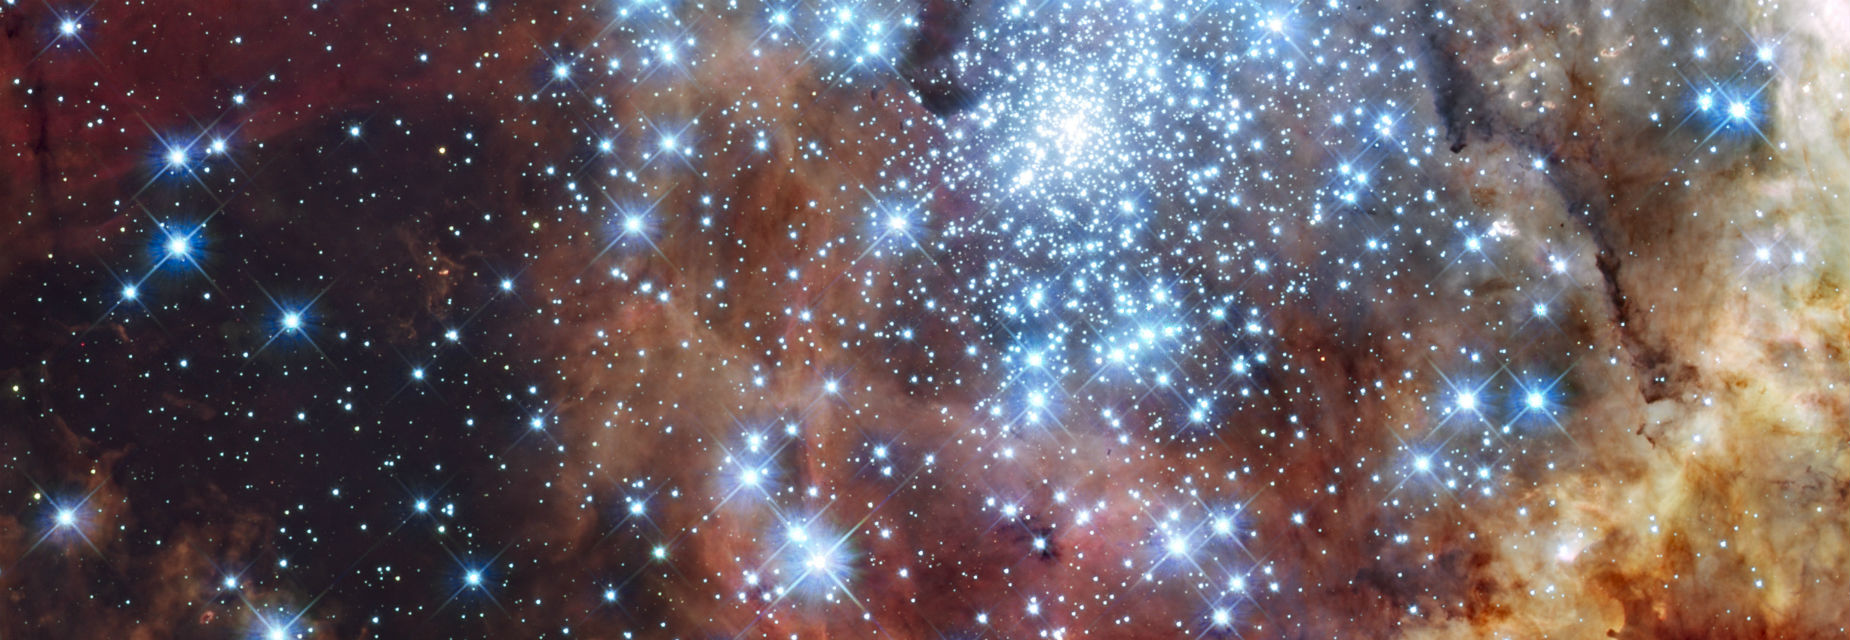 NASA image taken by the Hubble telescope of two star clusters